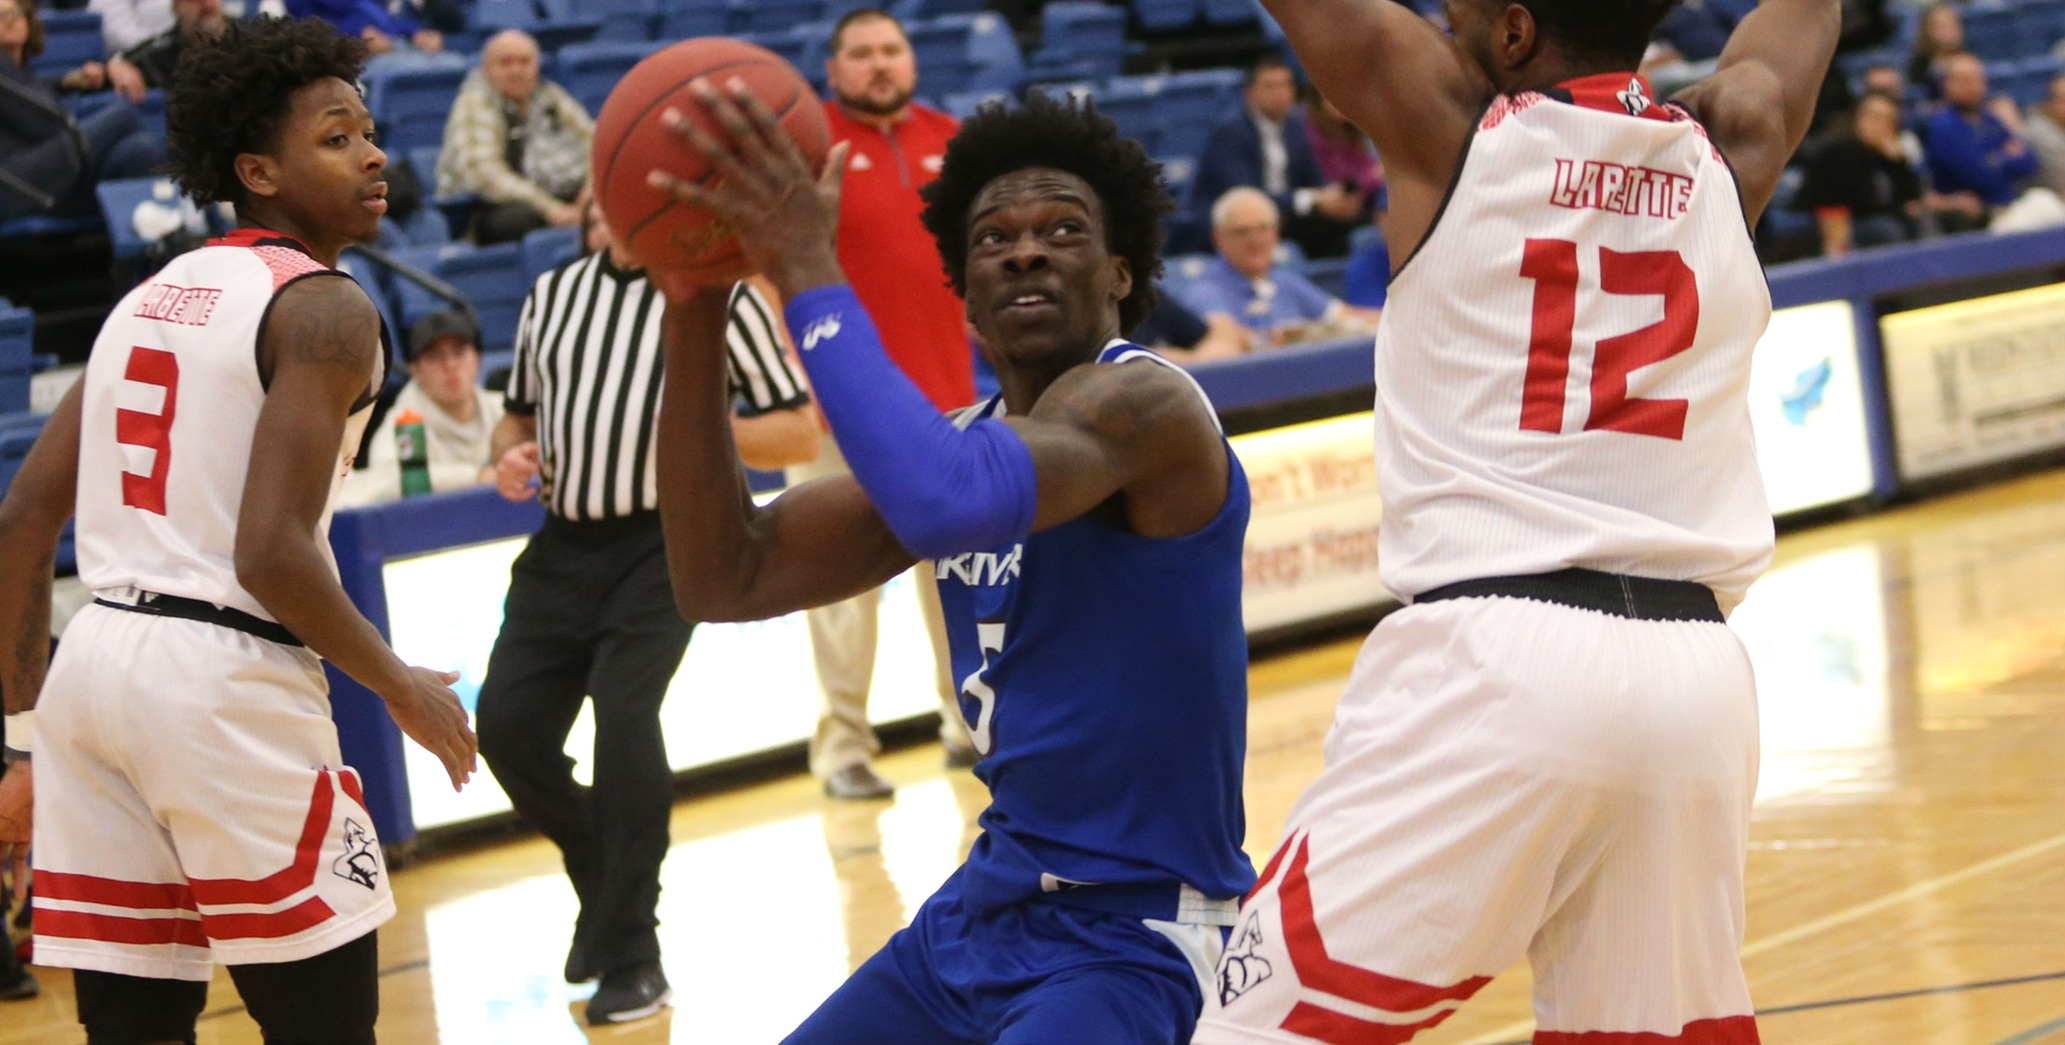 Travon Broadway and his Iowa Western teammates collected their 15th win of the season with a 101-57 road victory Tuesday evening (1/15/19) in New Providence, IA.